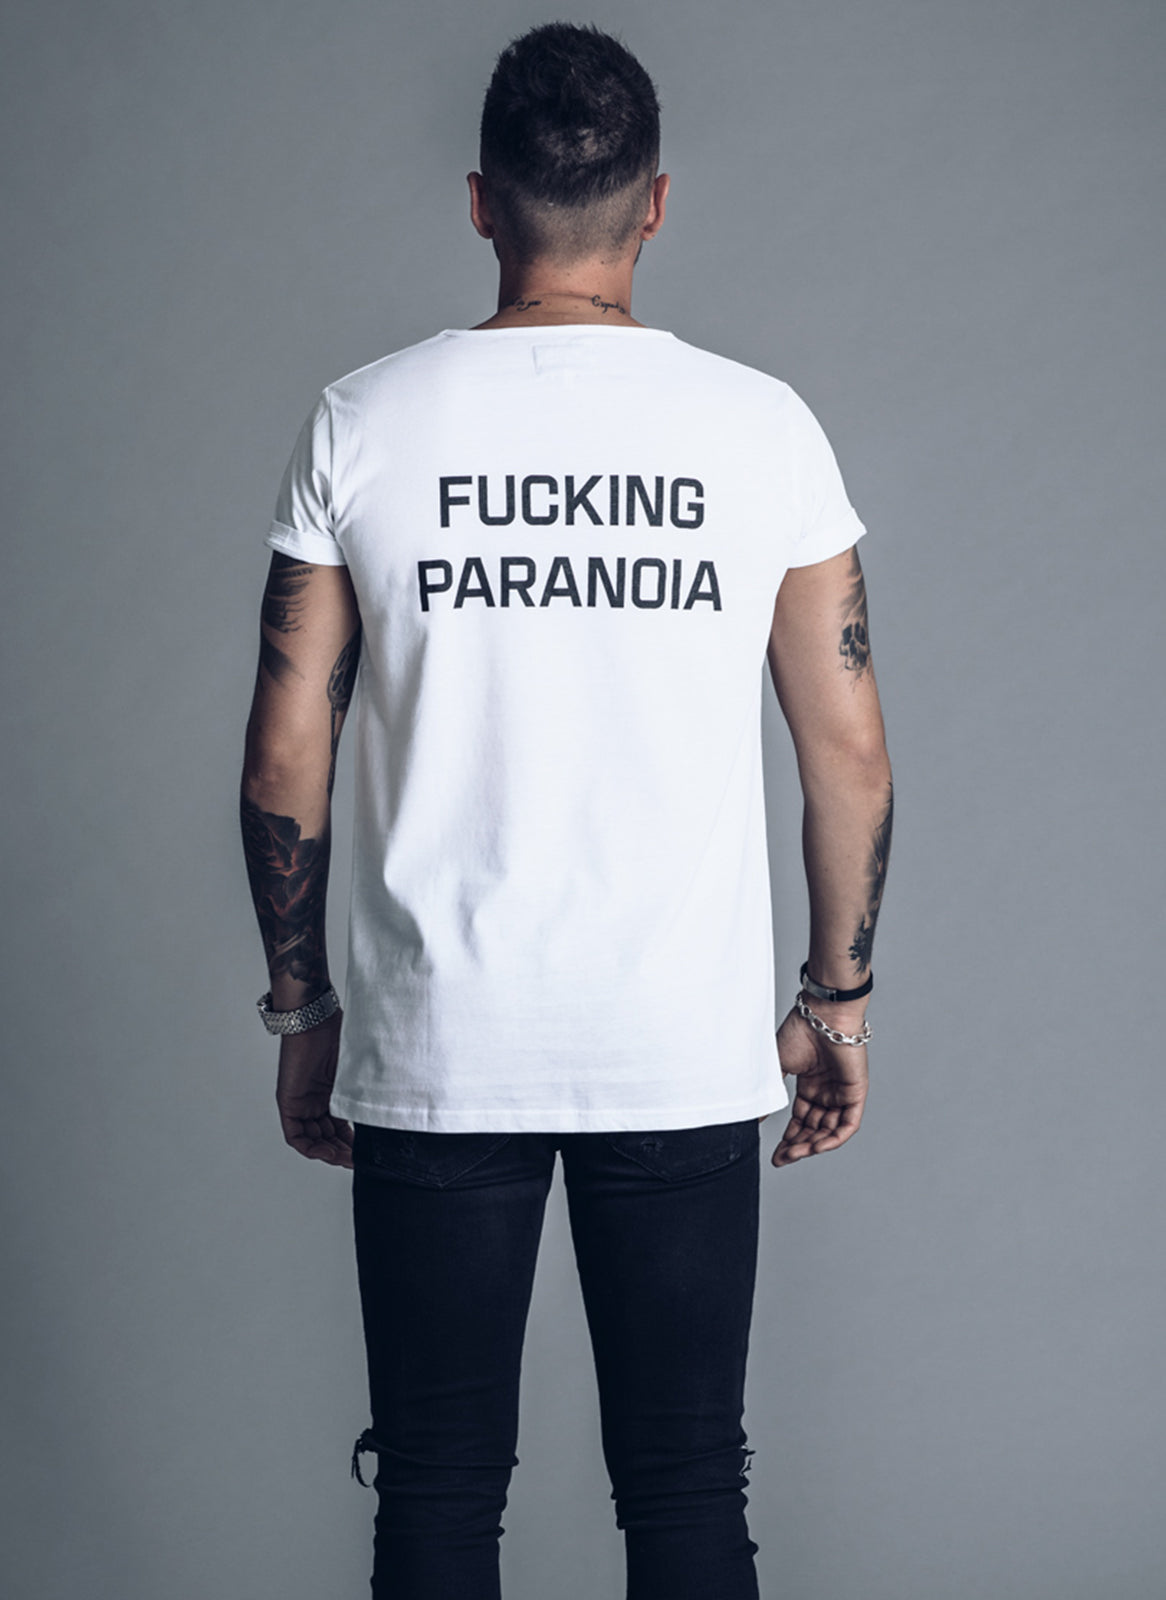 Fucking Paranoia - White t-shirt - We love techno